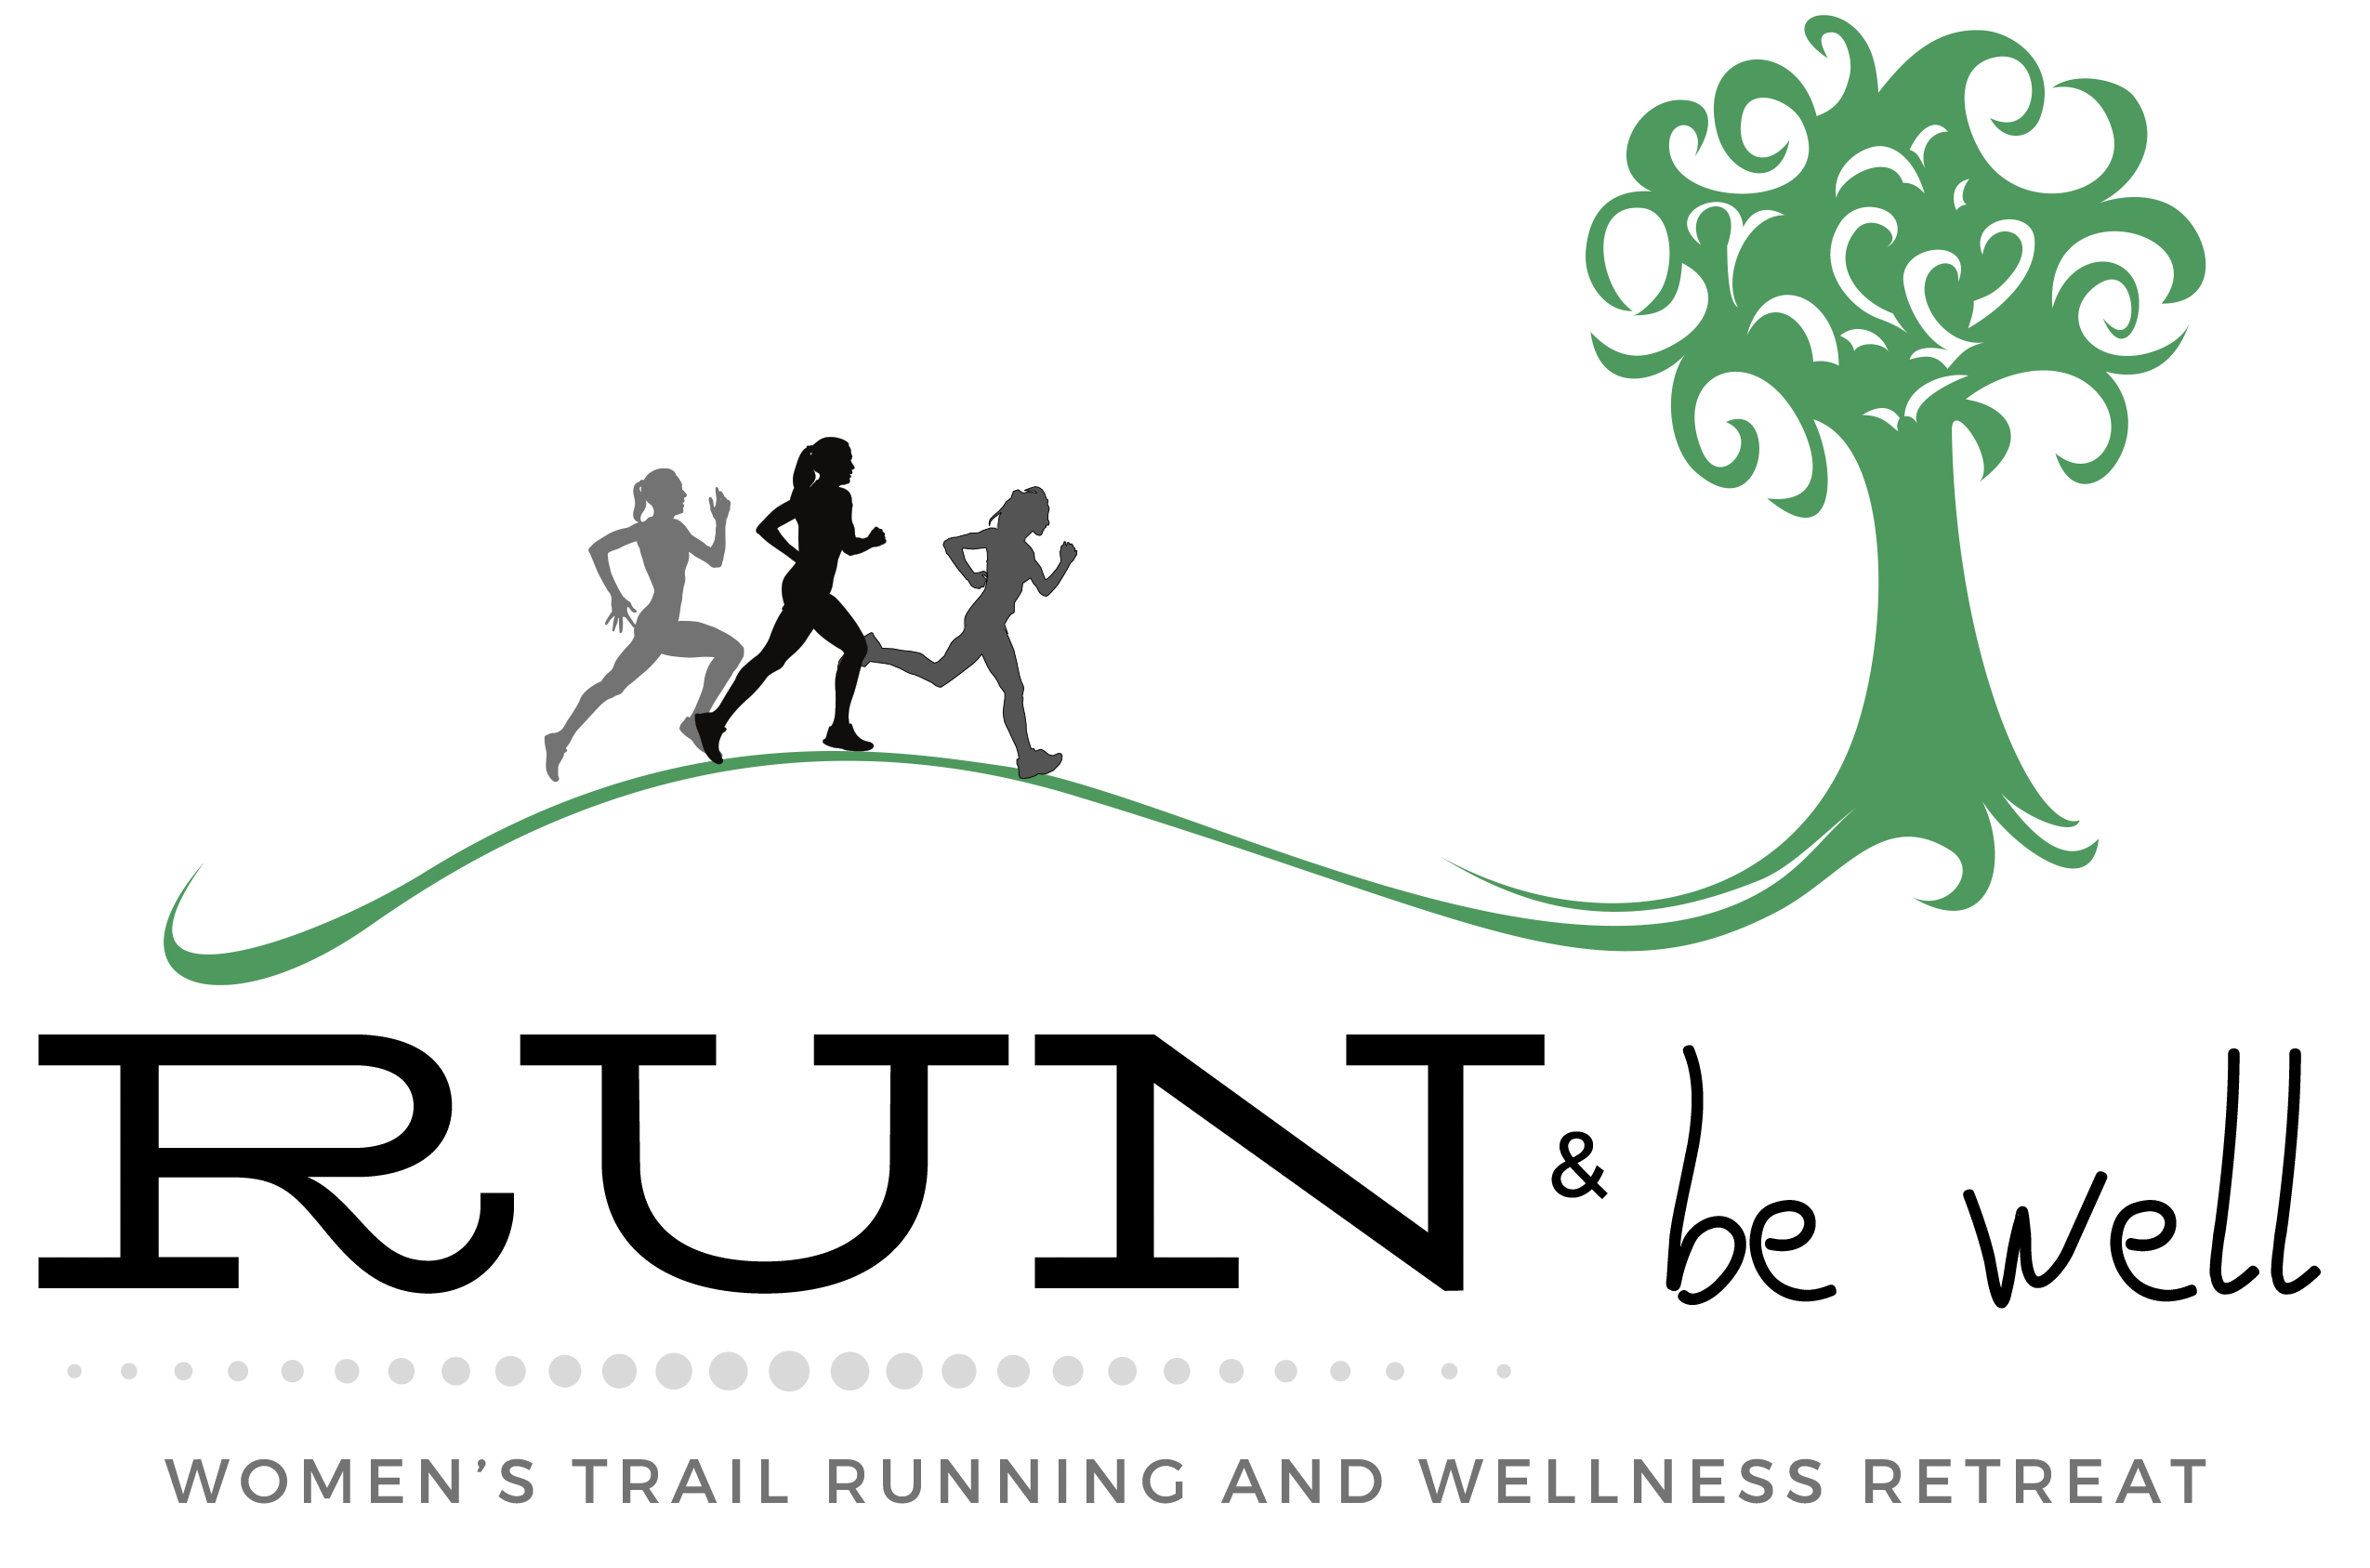 Run & Be Well | Women's Trail Running and Wellness Retreat | Running on Happy